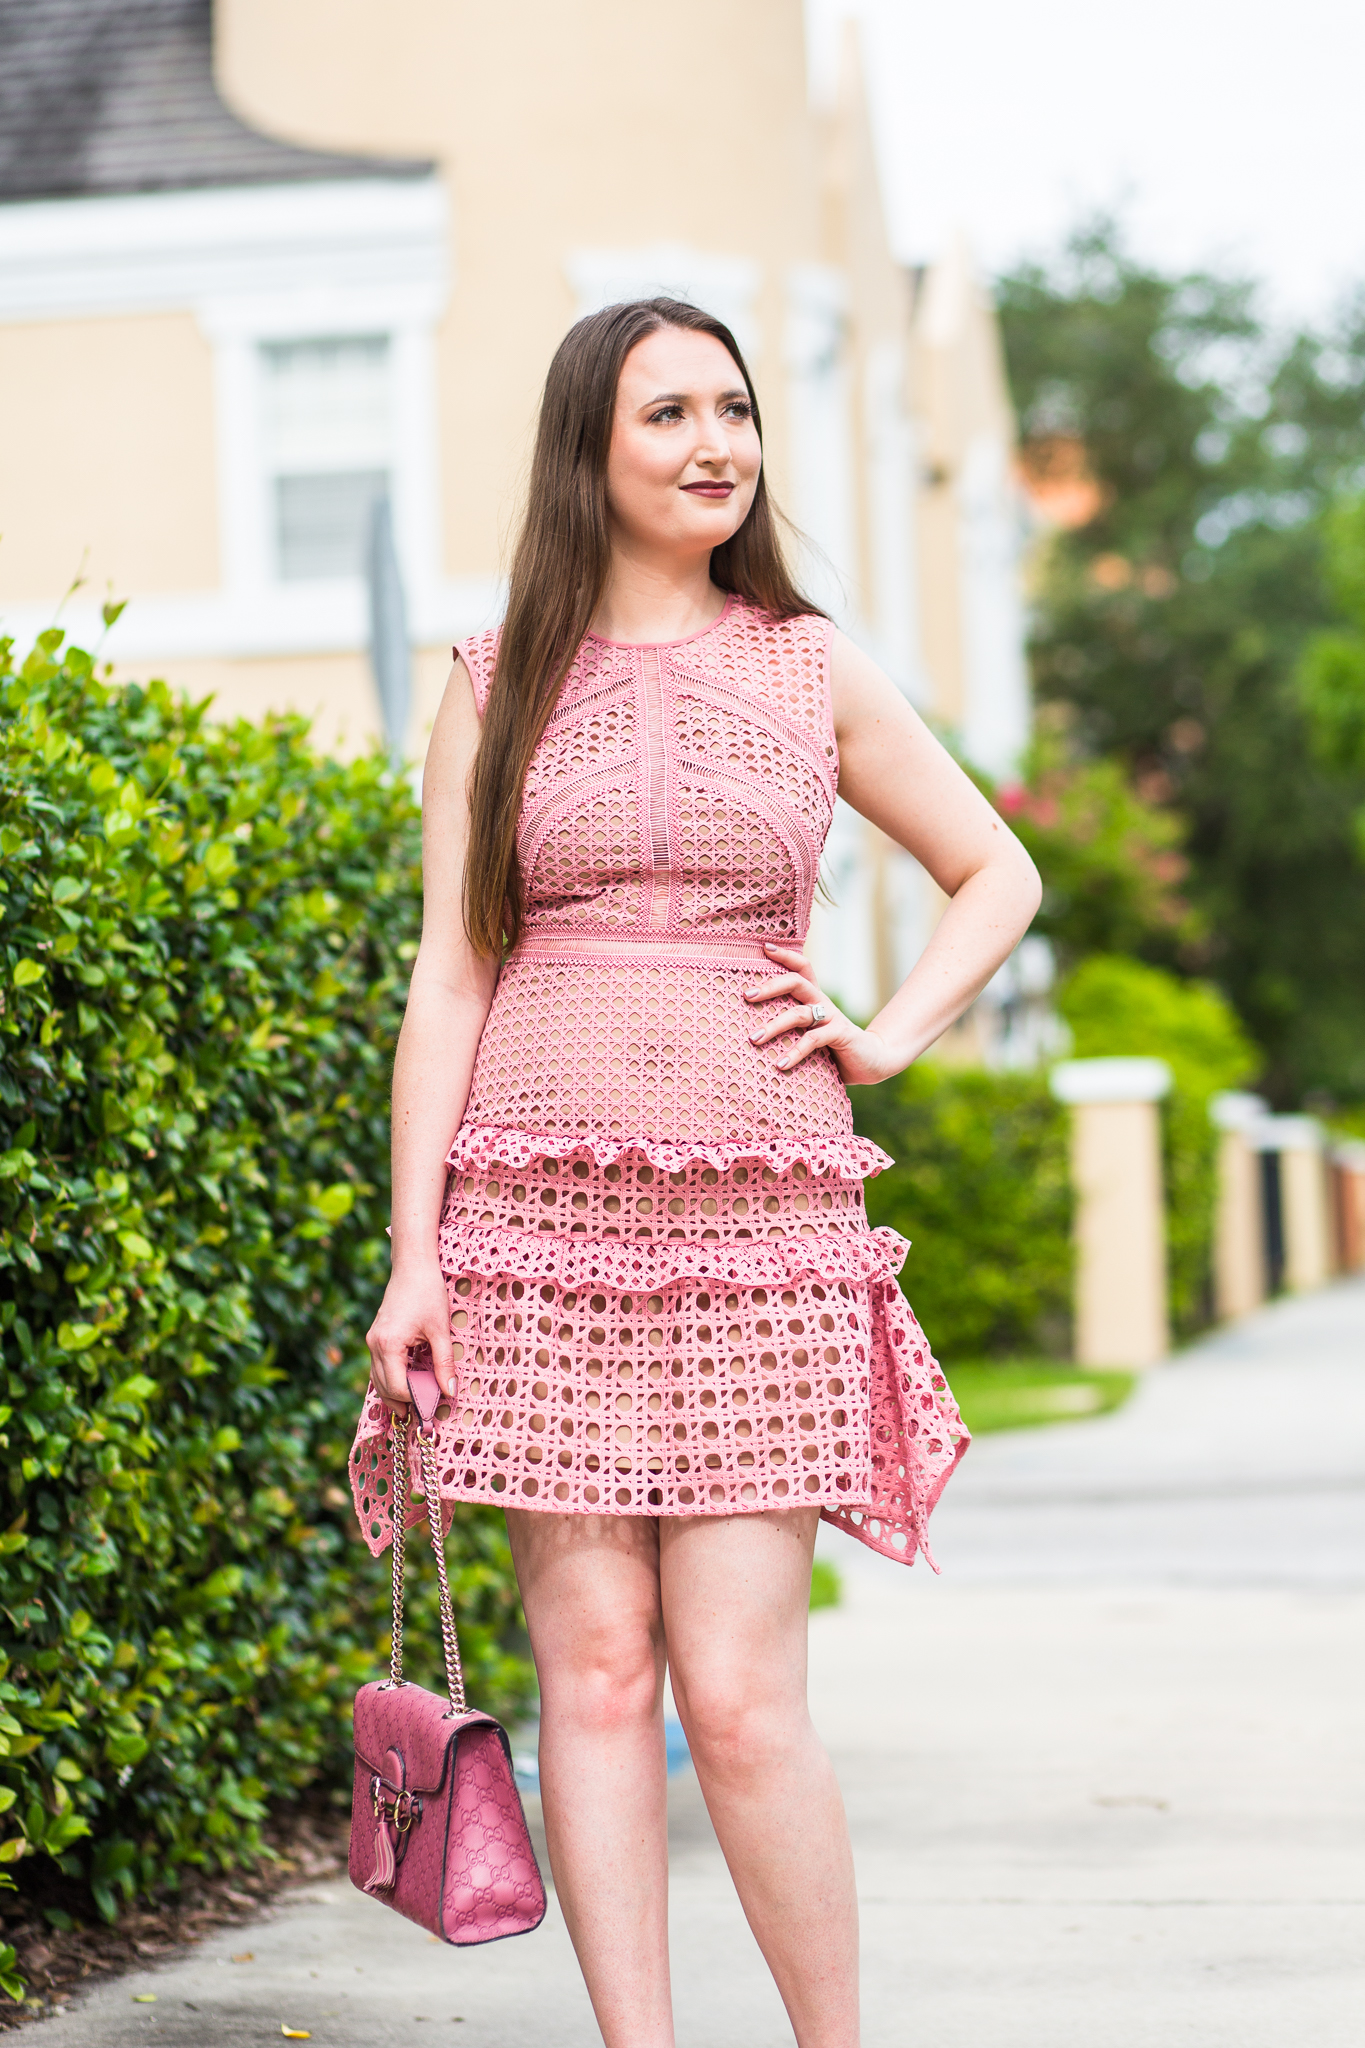 All Pink Everything Glamour Dress And Heels Christinabtv